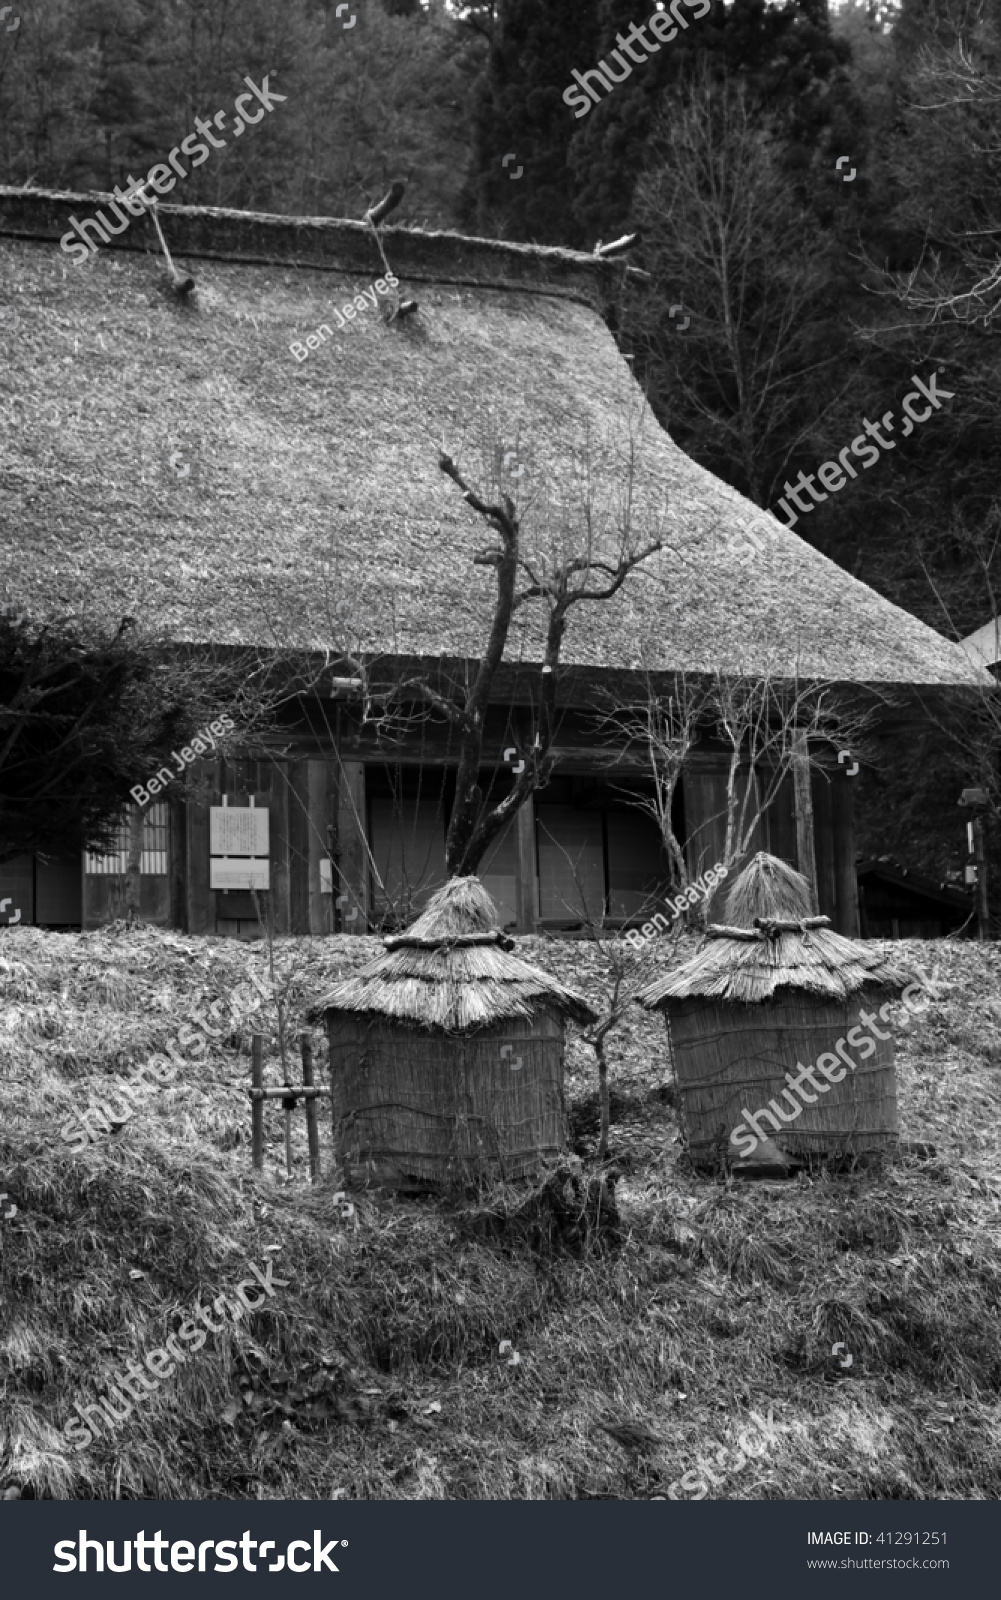 Traditional Style Japanese Village With Period Thatched Buildings In The Background. Black And White. Takayama - Japan Stock Photo 41291251 ...